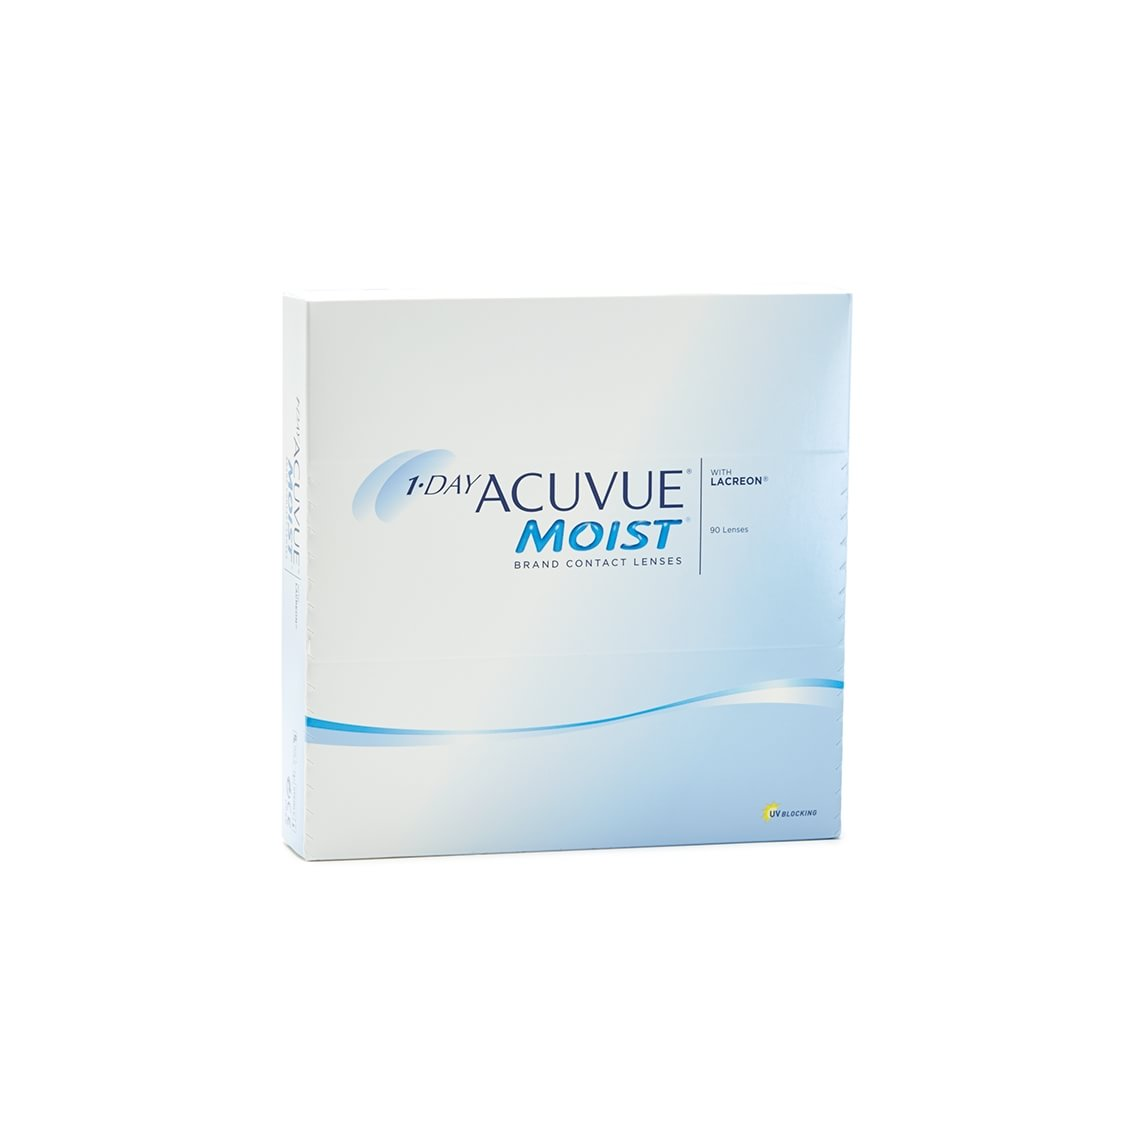 1-Day Acuvue Moist 90 stk/pakke